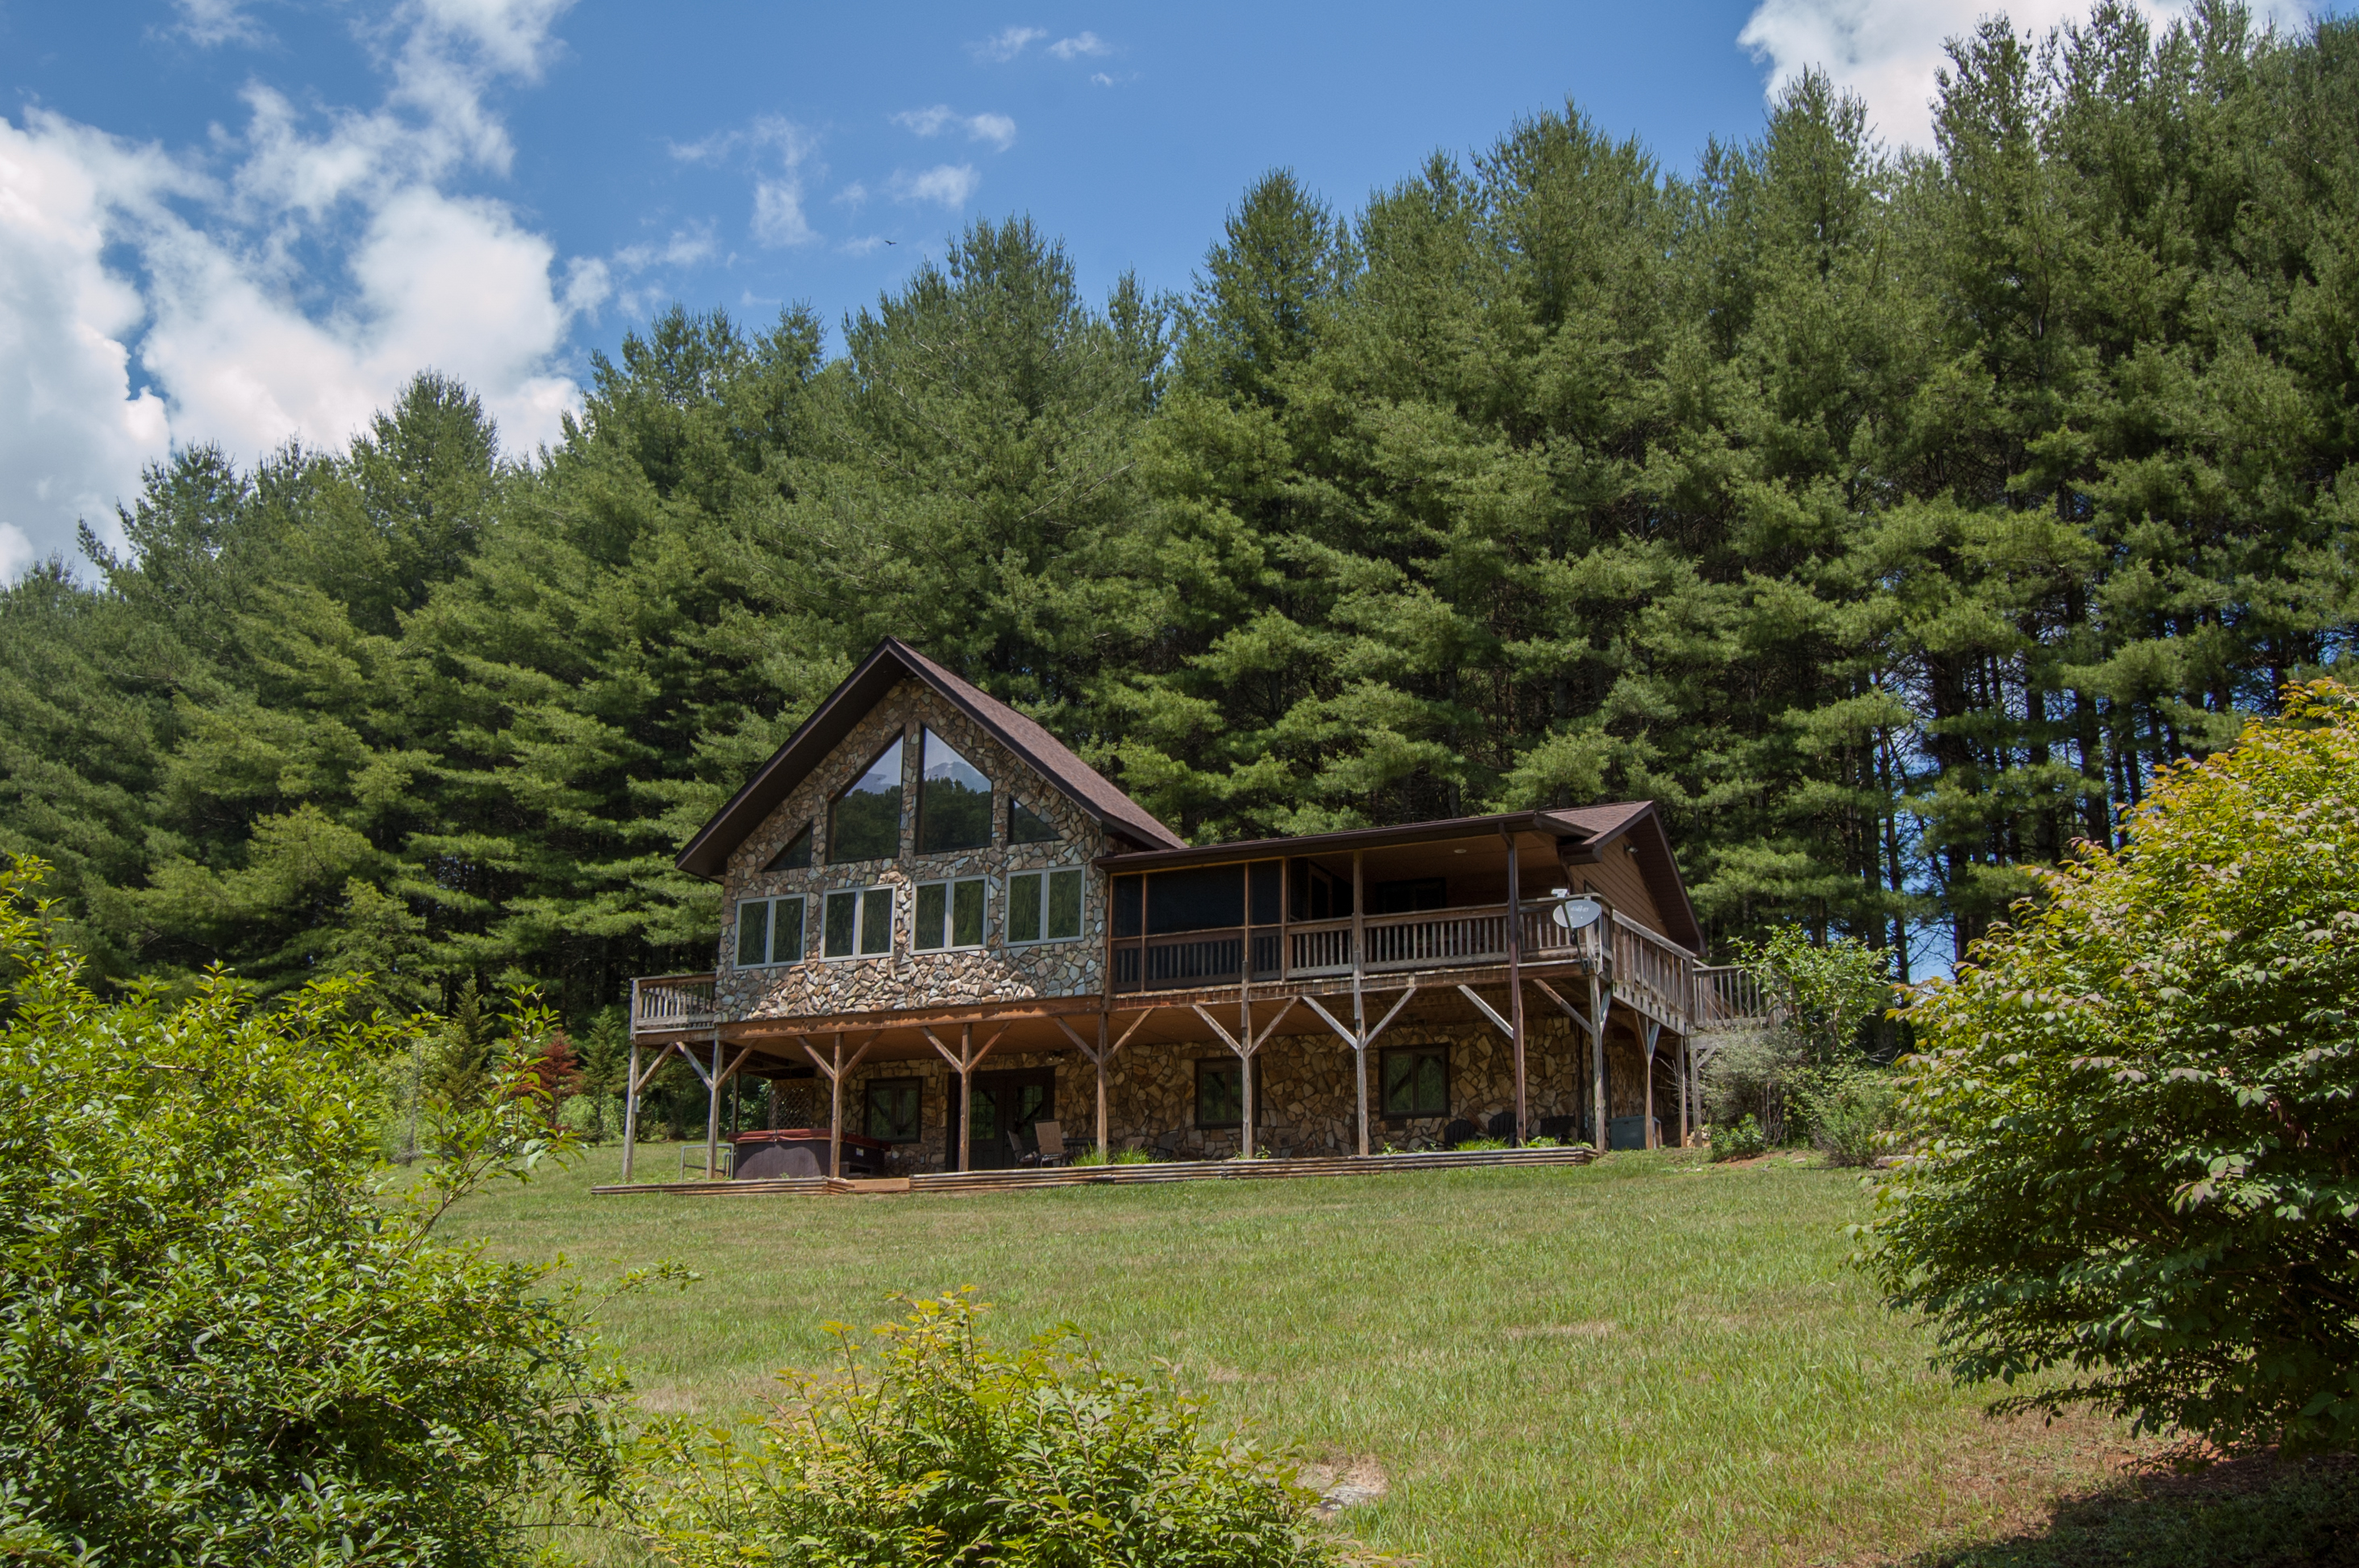 luxury blue ridge cabin cabins rental bacspabath talentneeds parkway nc mountain asheville black com